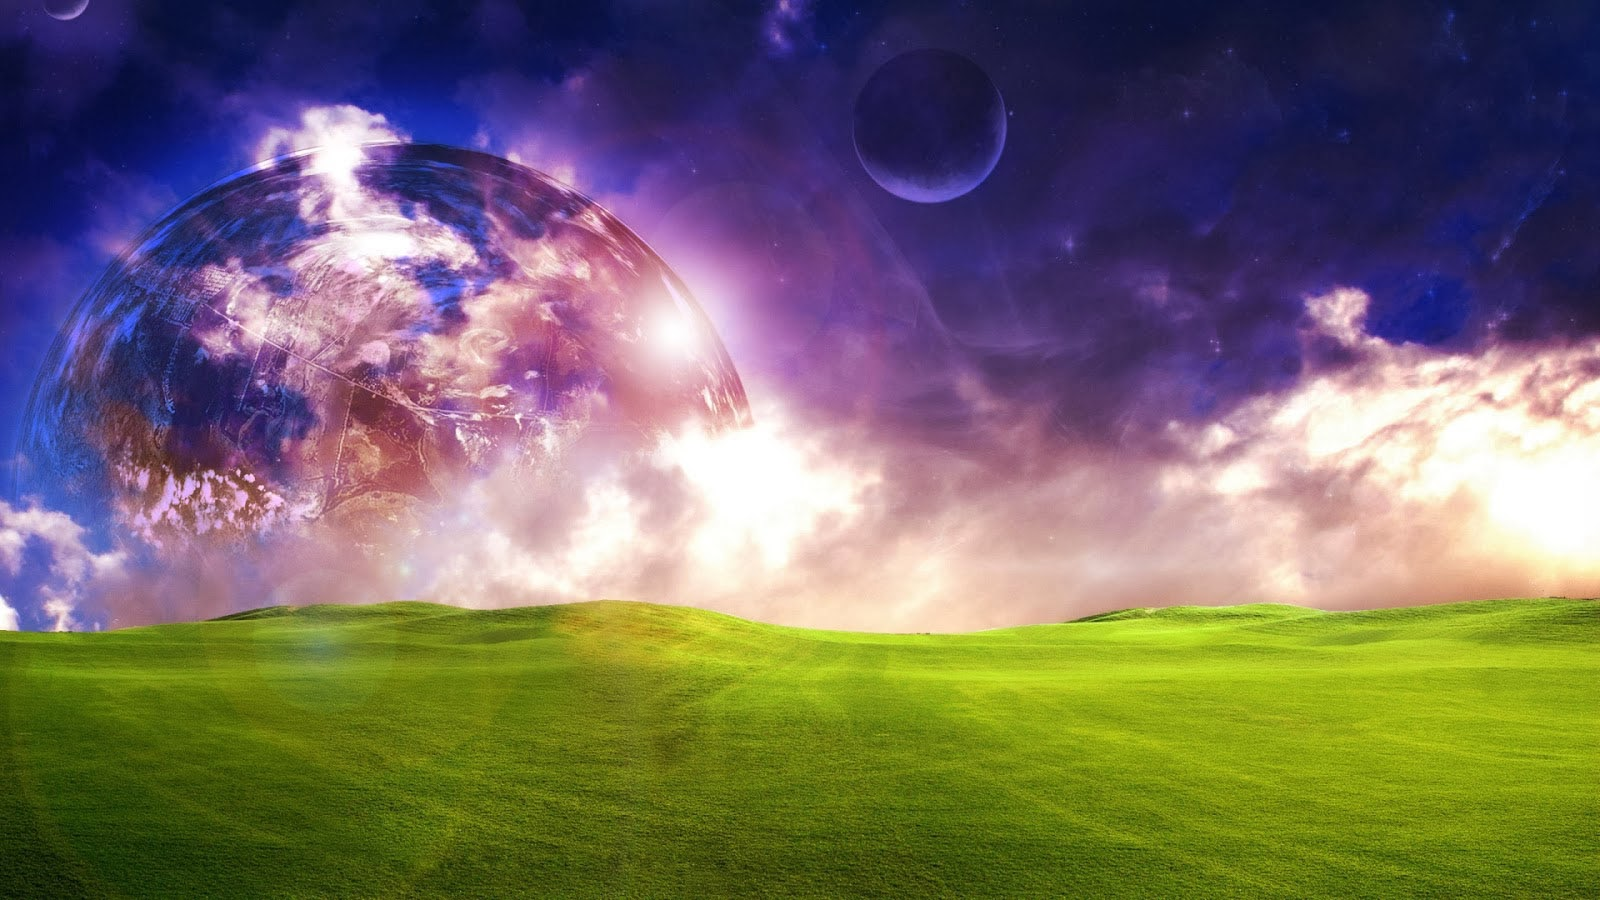 anstract earth wallpaper - photo #6